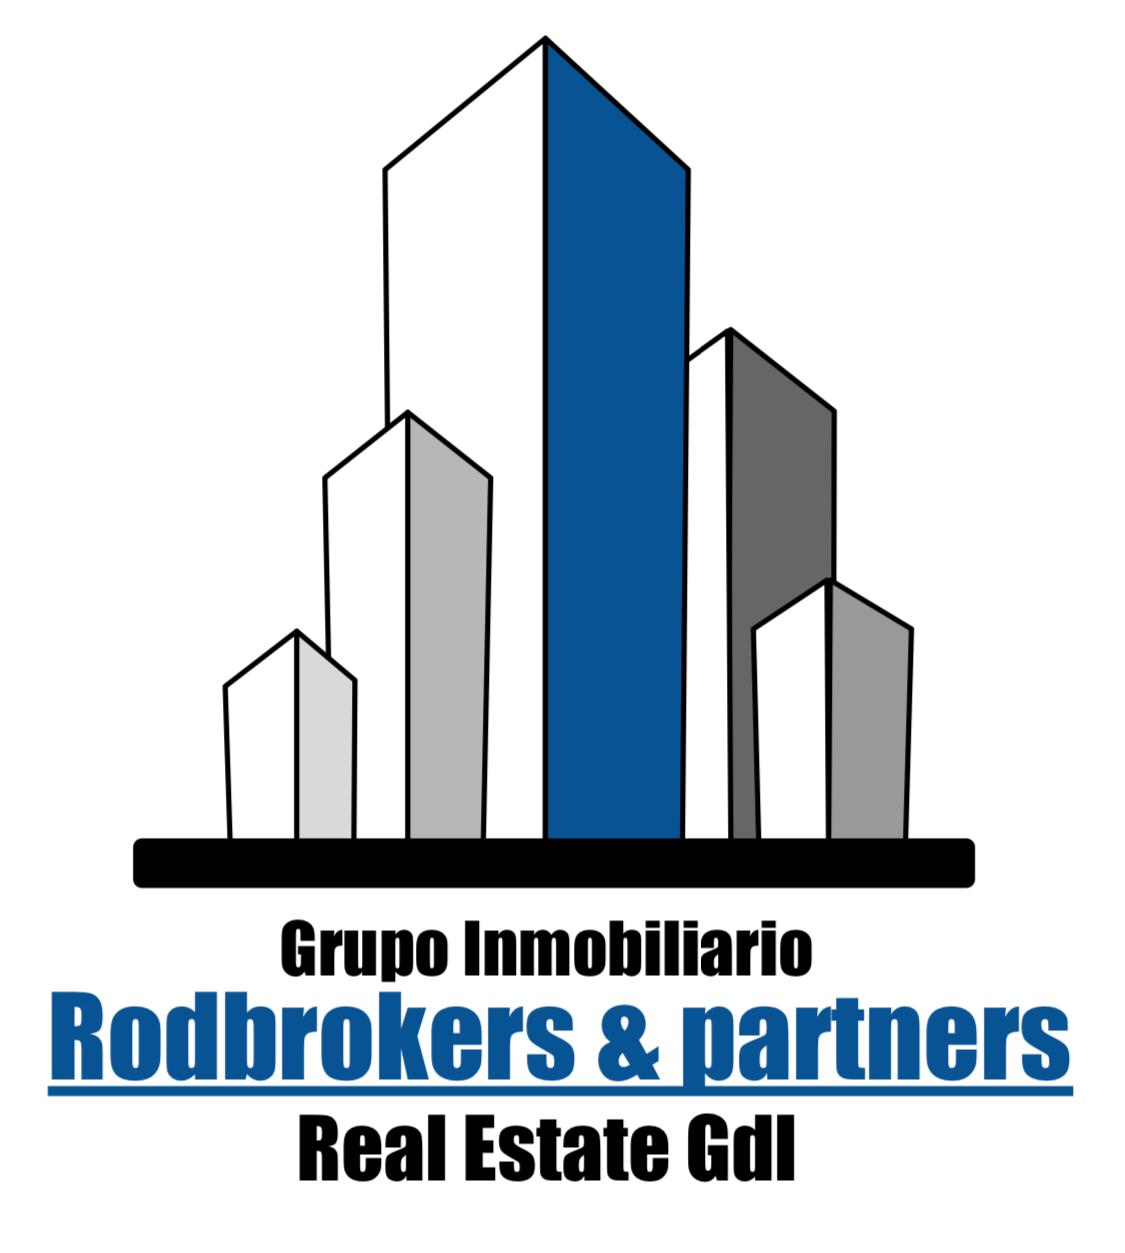 GRUPO INMOBILIARIO RODBROKERS & PARTNERS REAL ESTATE GDL